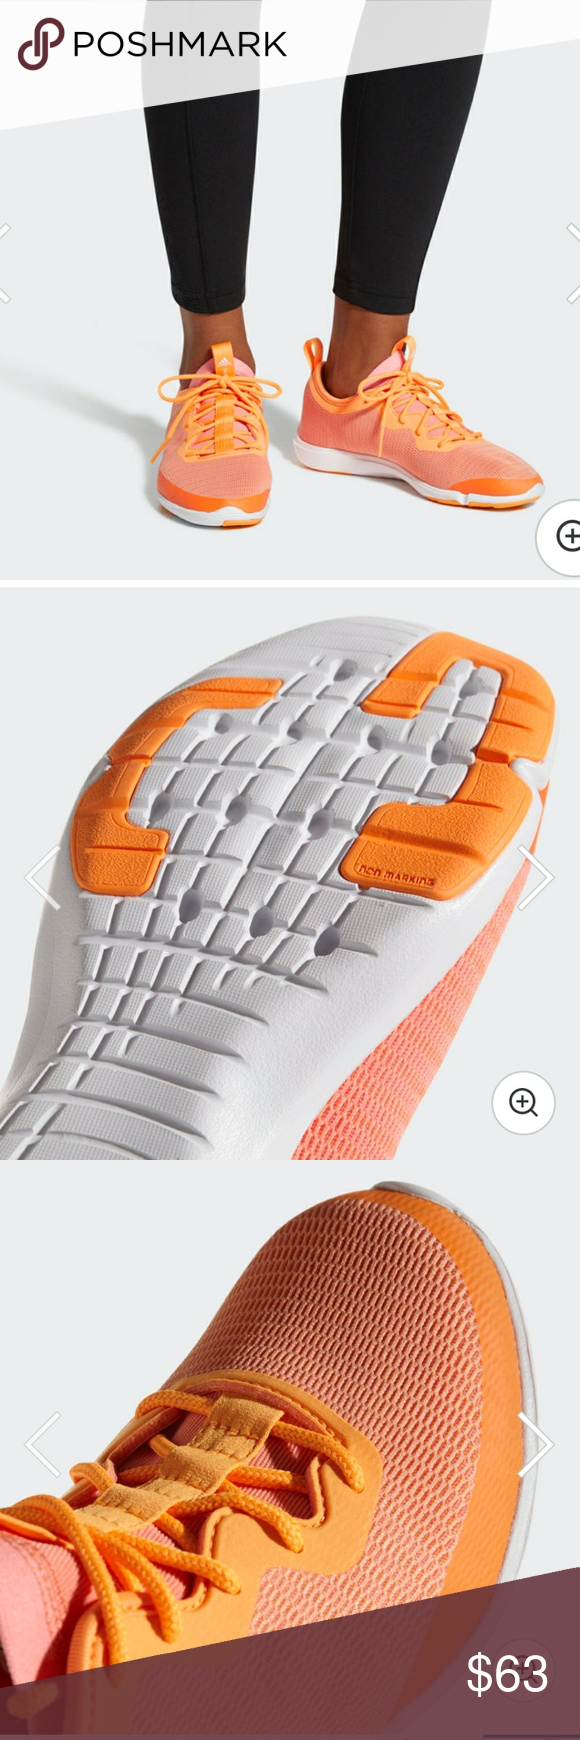 cd027ccf830f Price Firm🍀Adidas CrazyMove TR W These women s training shoes bring a  better-